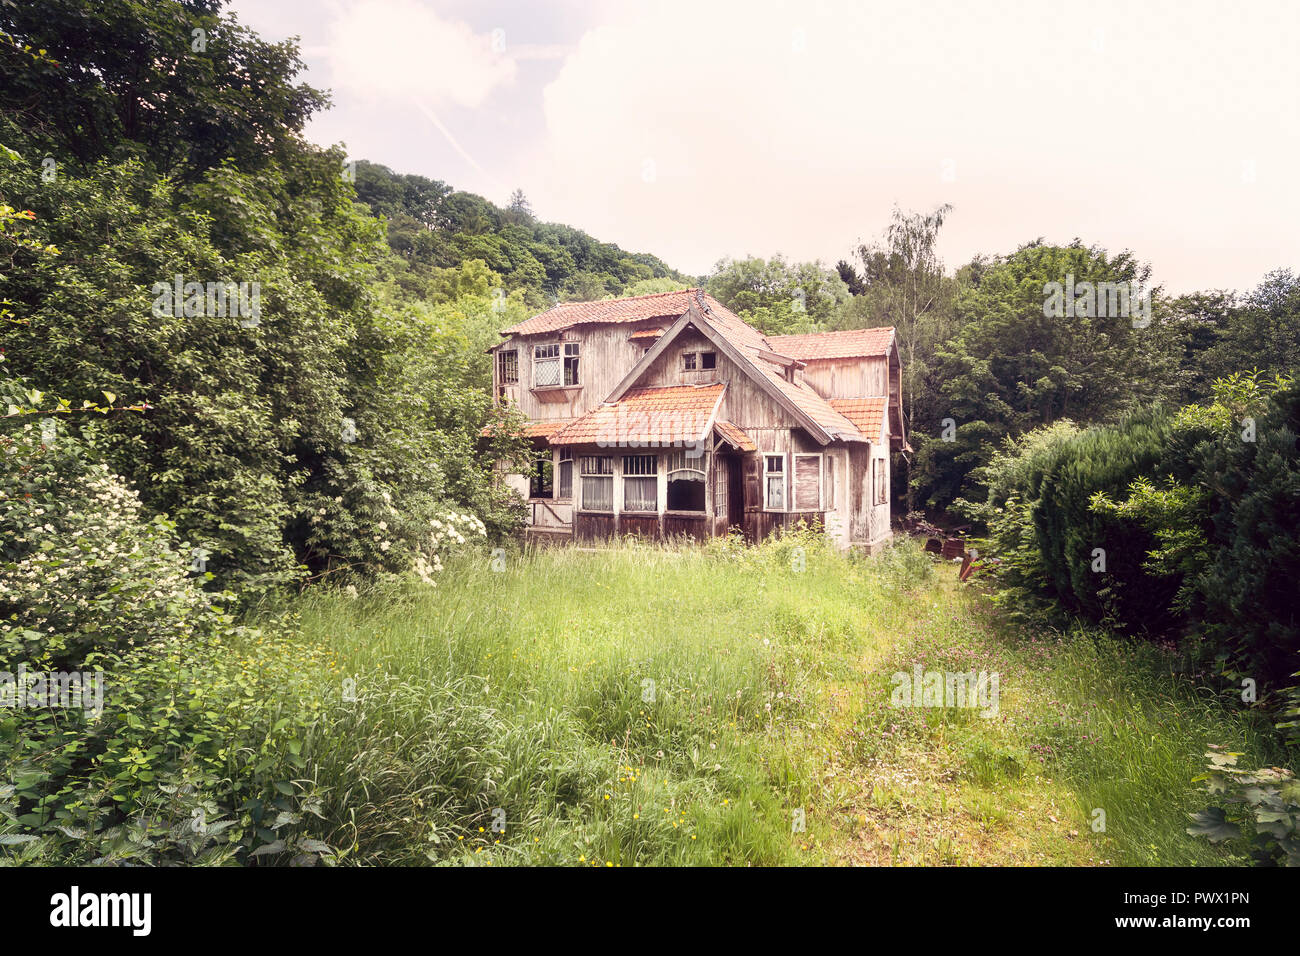 Exterior View From Overgrown Garden Of An Abandoned Wooden House In Spa Belgium Stock Photo Alamy